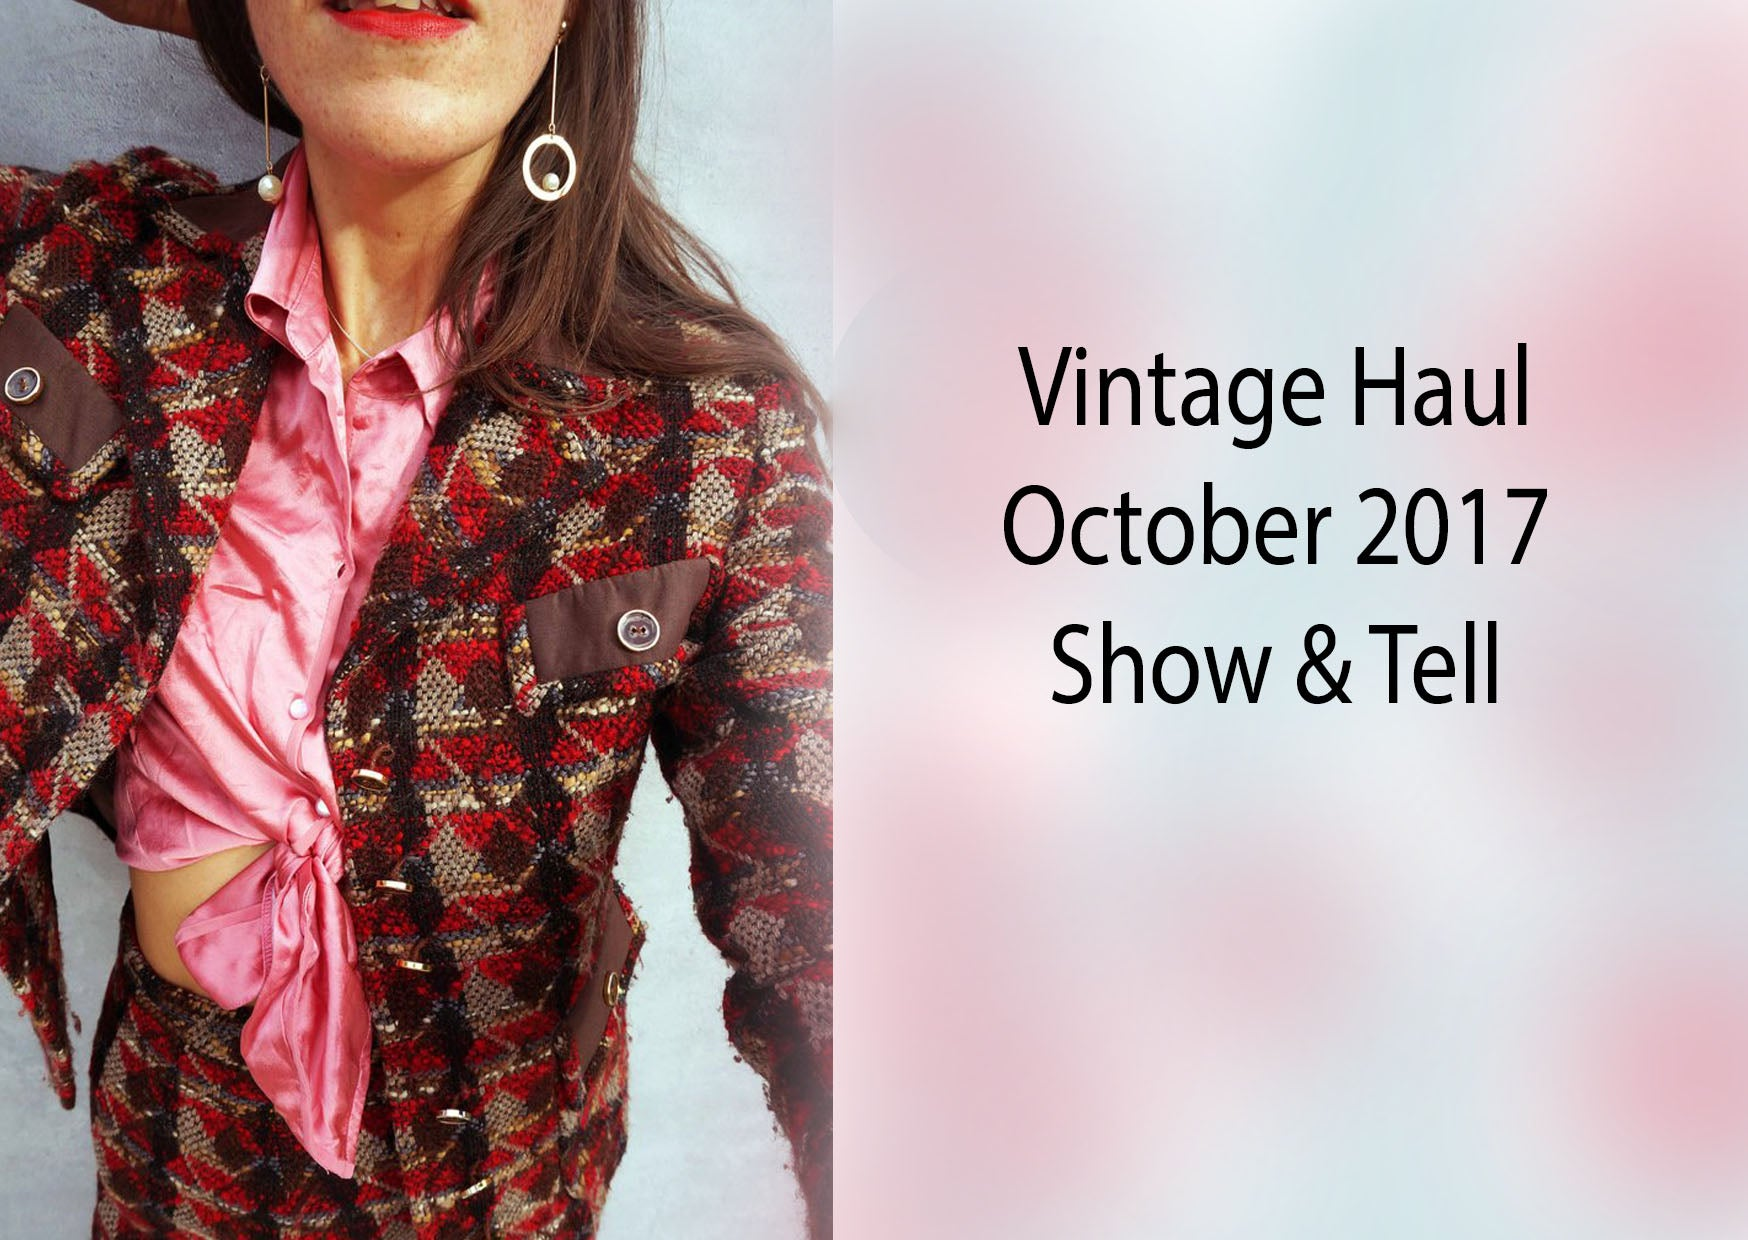 Vintage Haul October 2017- Show and Tell Video